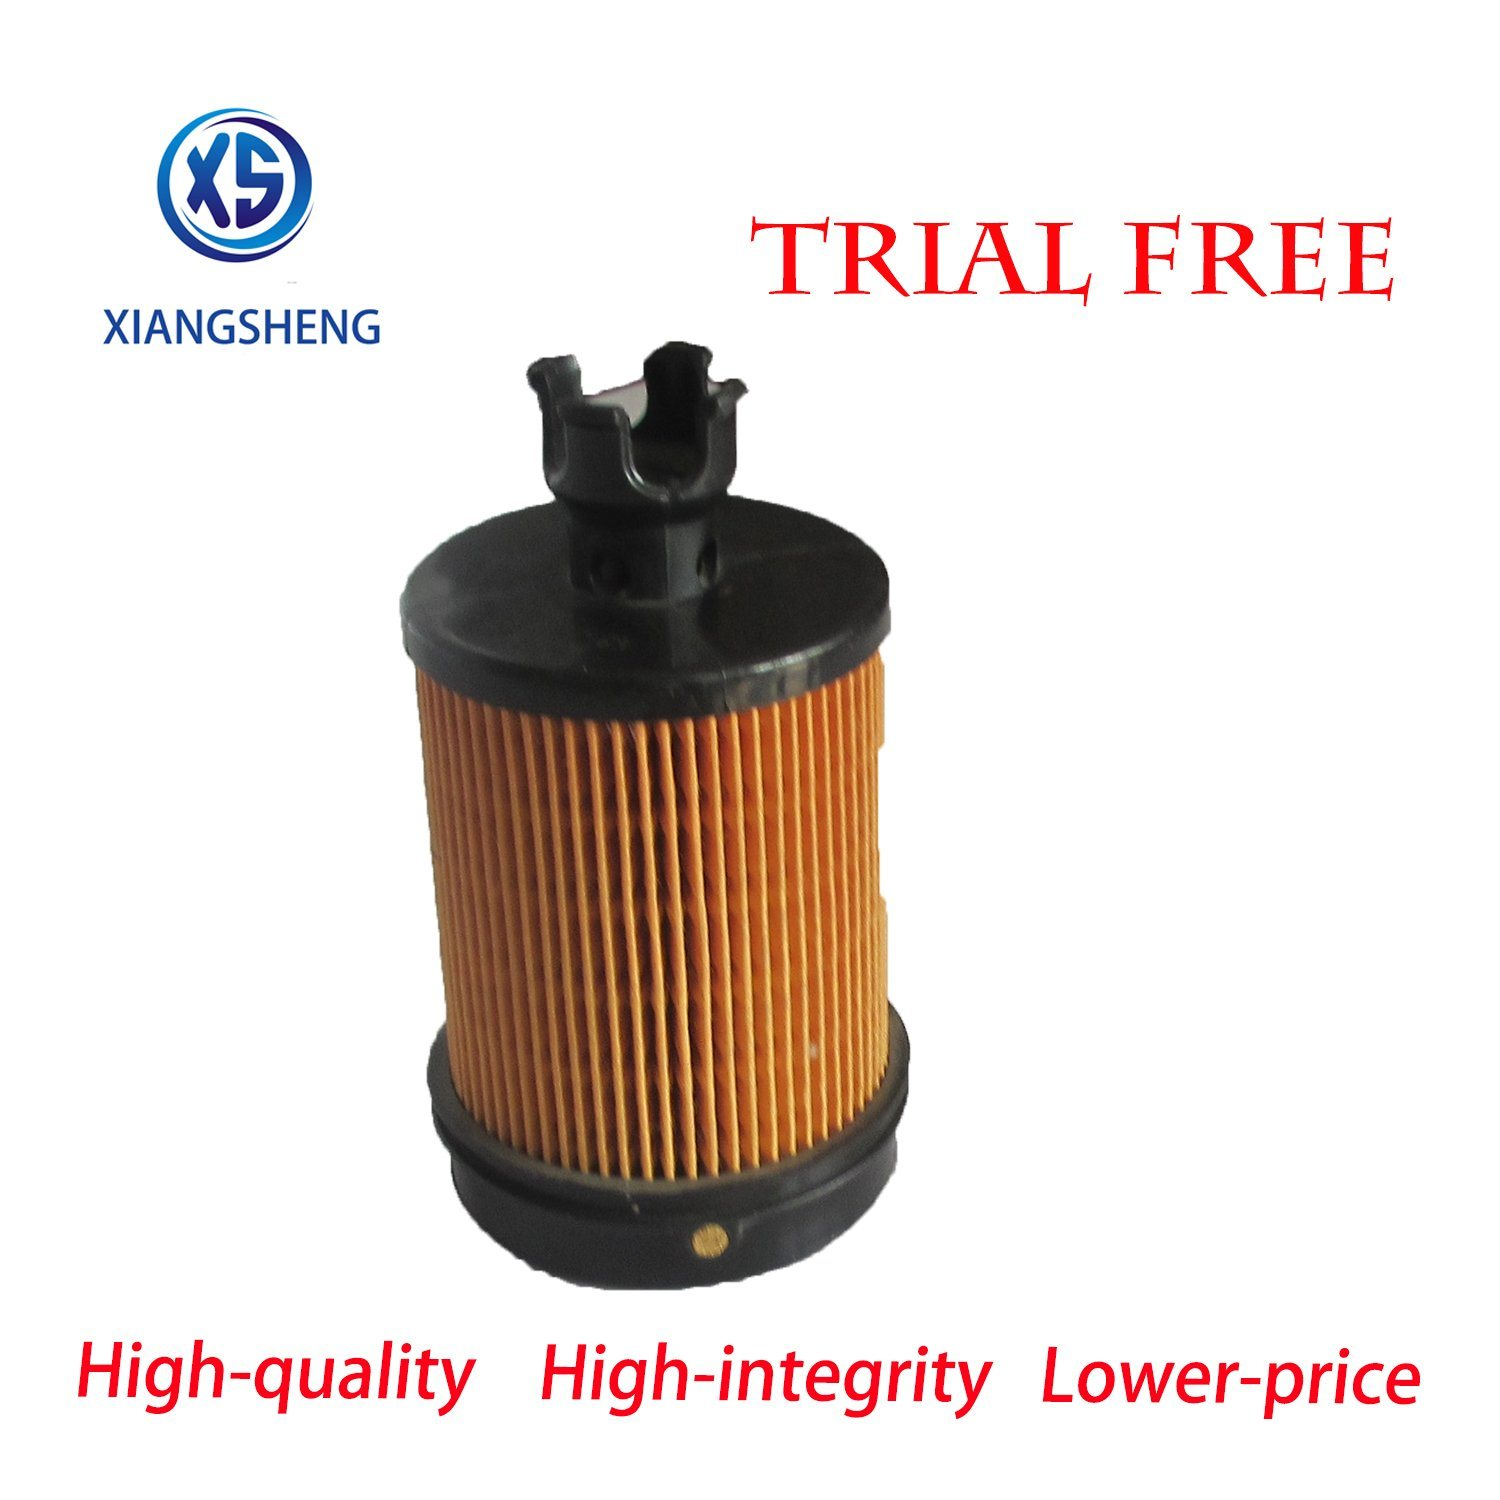 China Auto Filter Manufacturer Supply Diesel Fuel 23304 78091 Filters 78090 Used For Hino Trucks